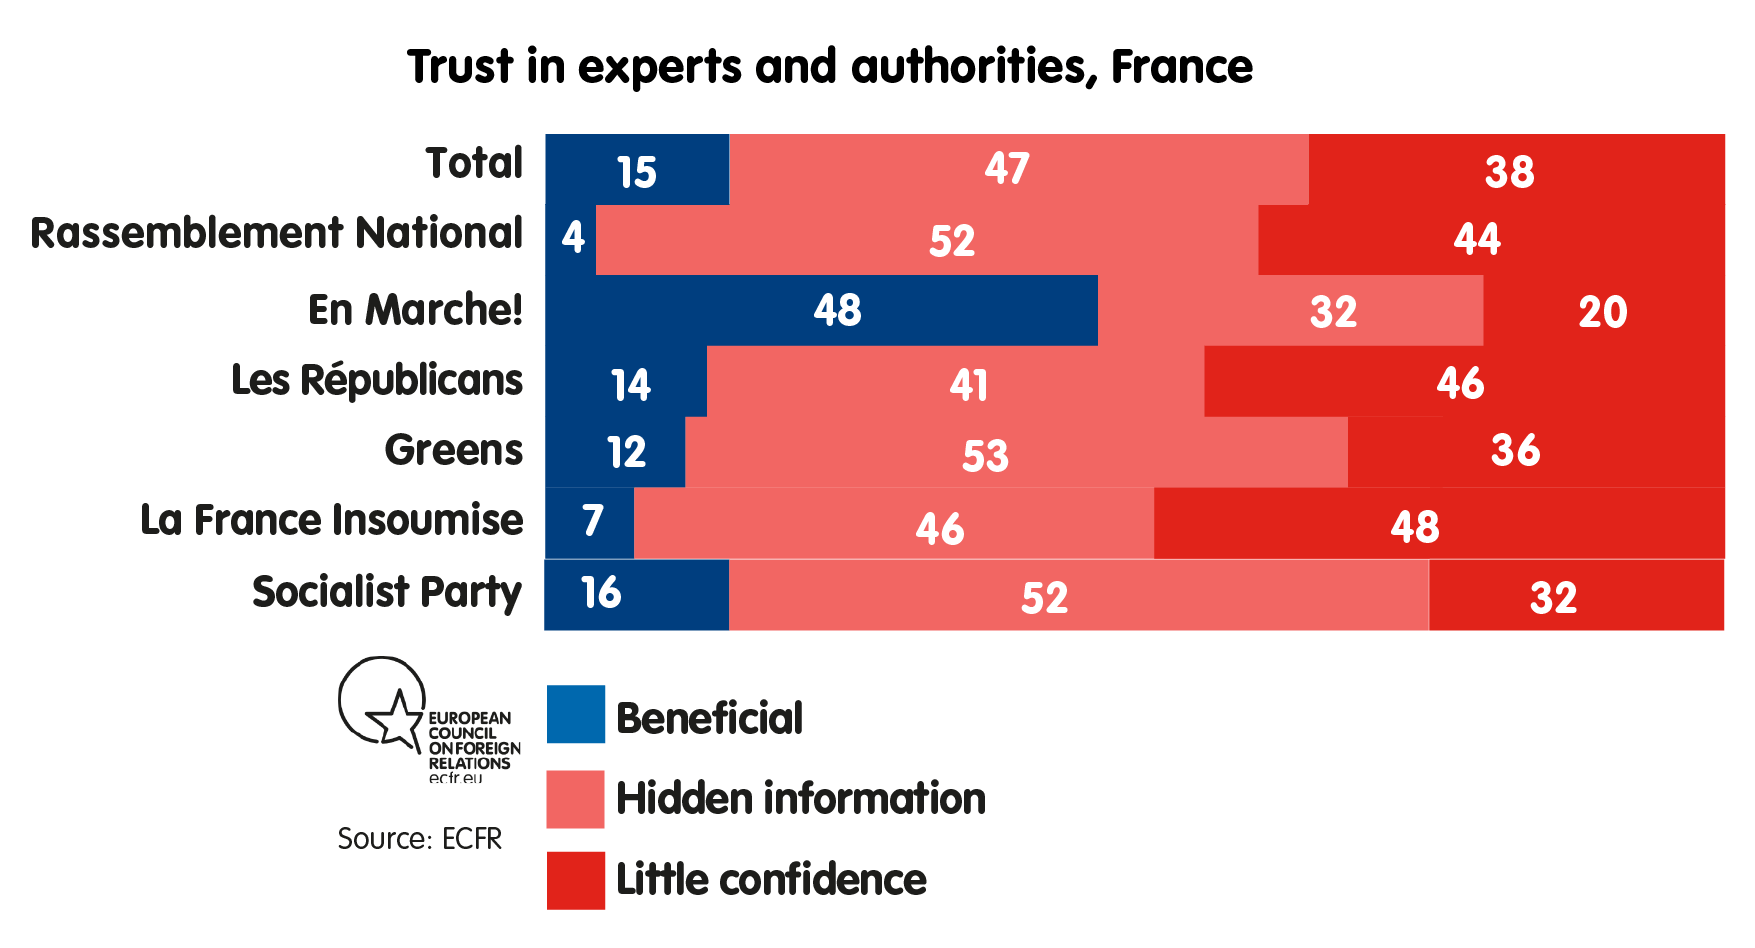 Trust in experts and authorities, France